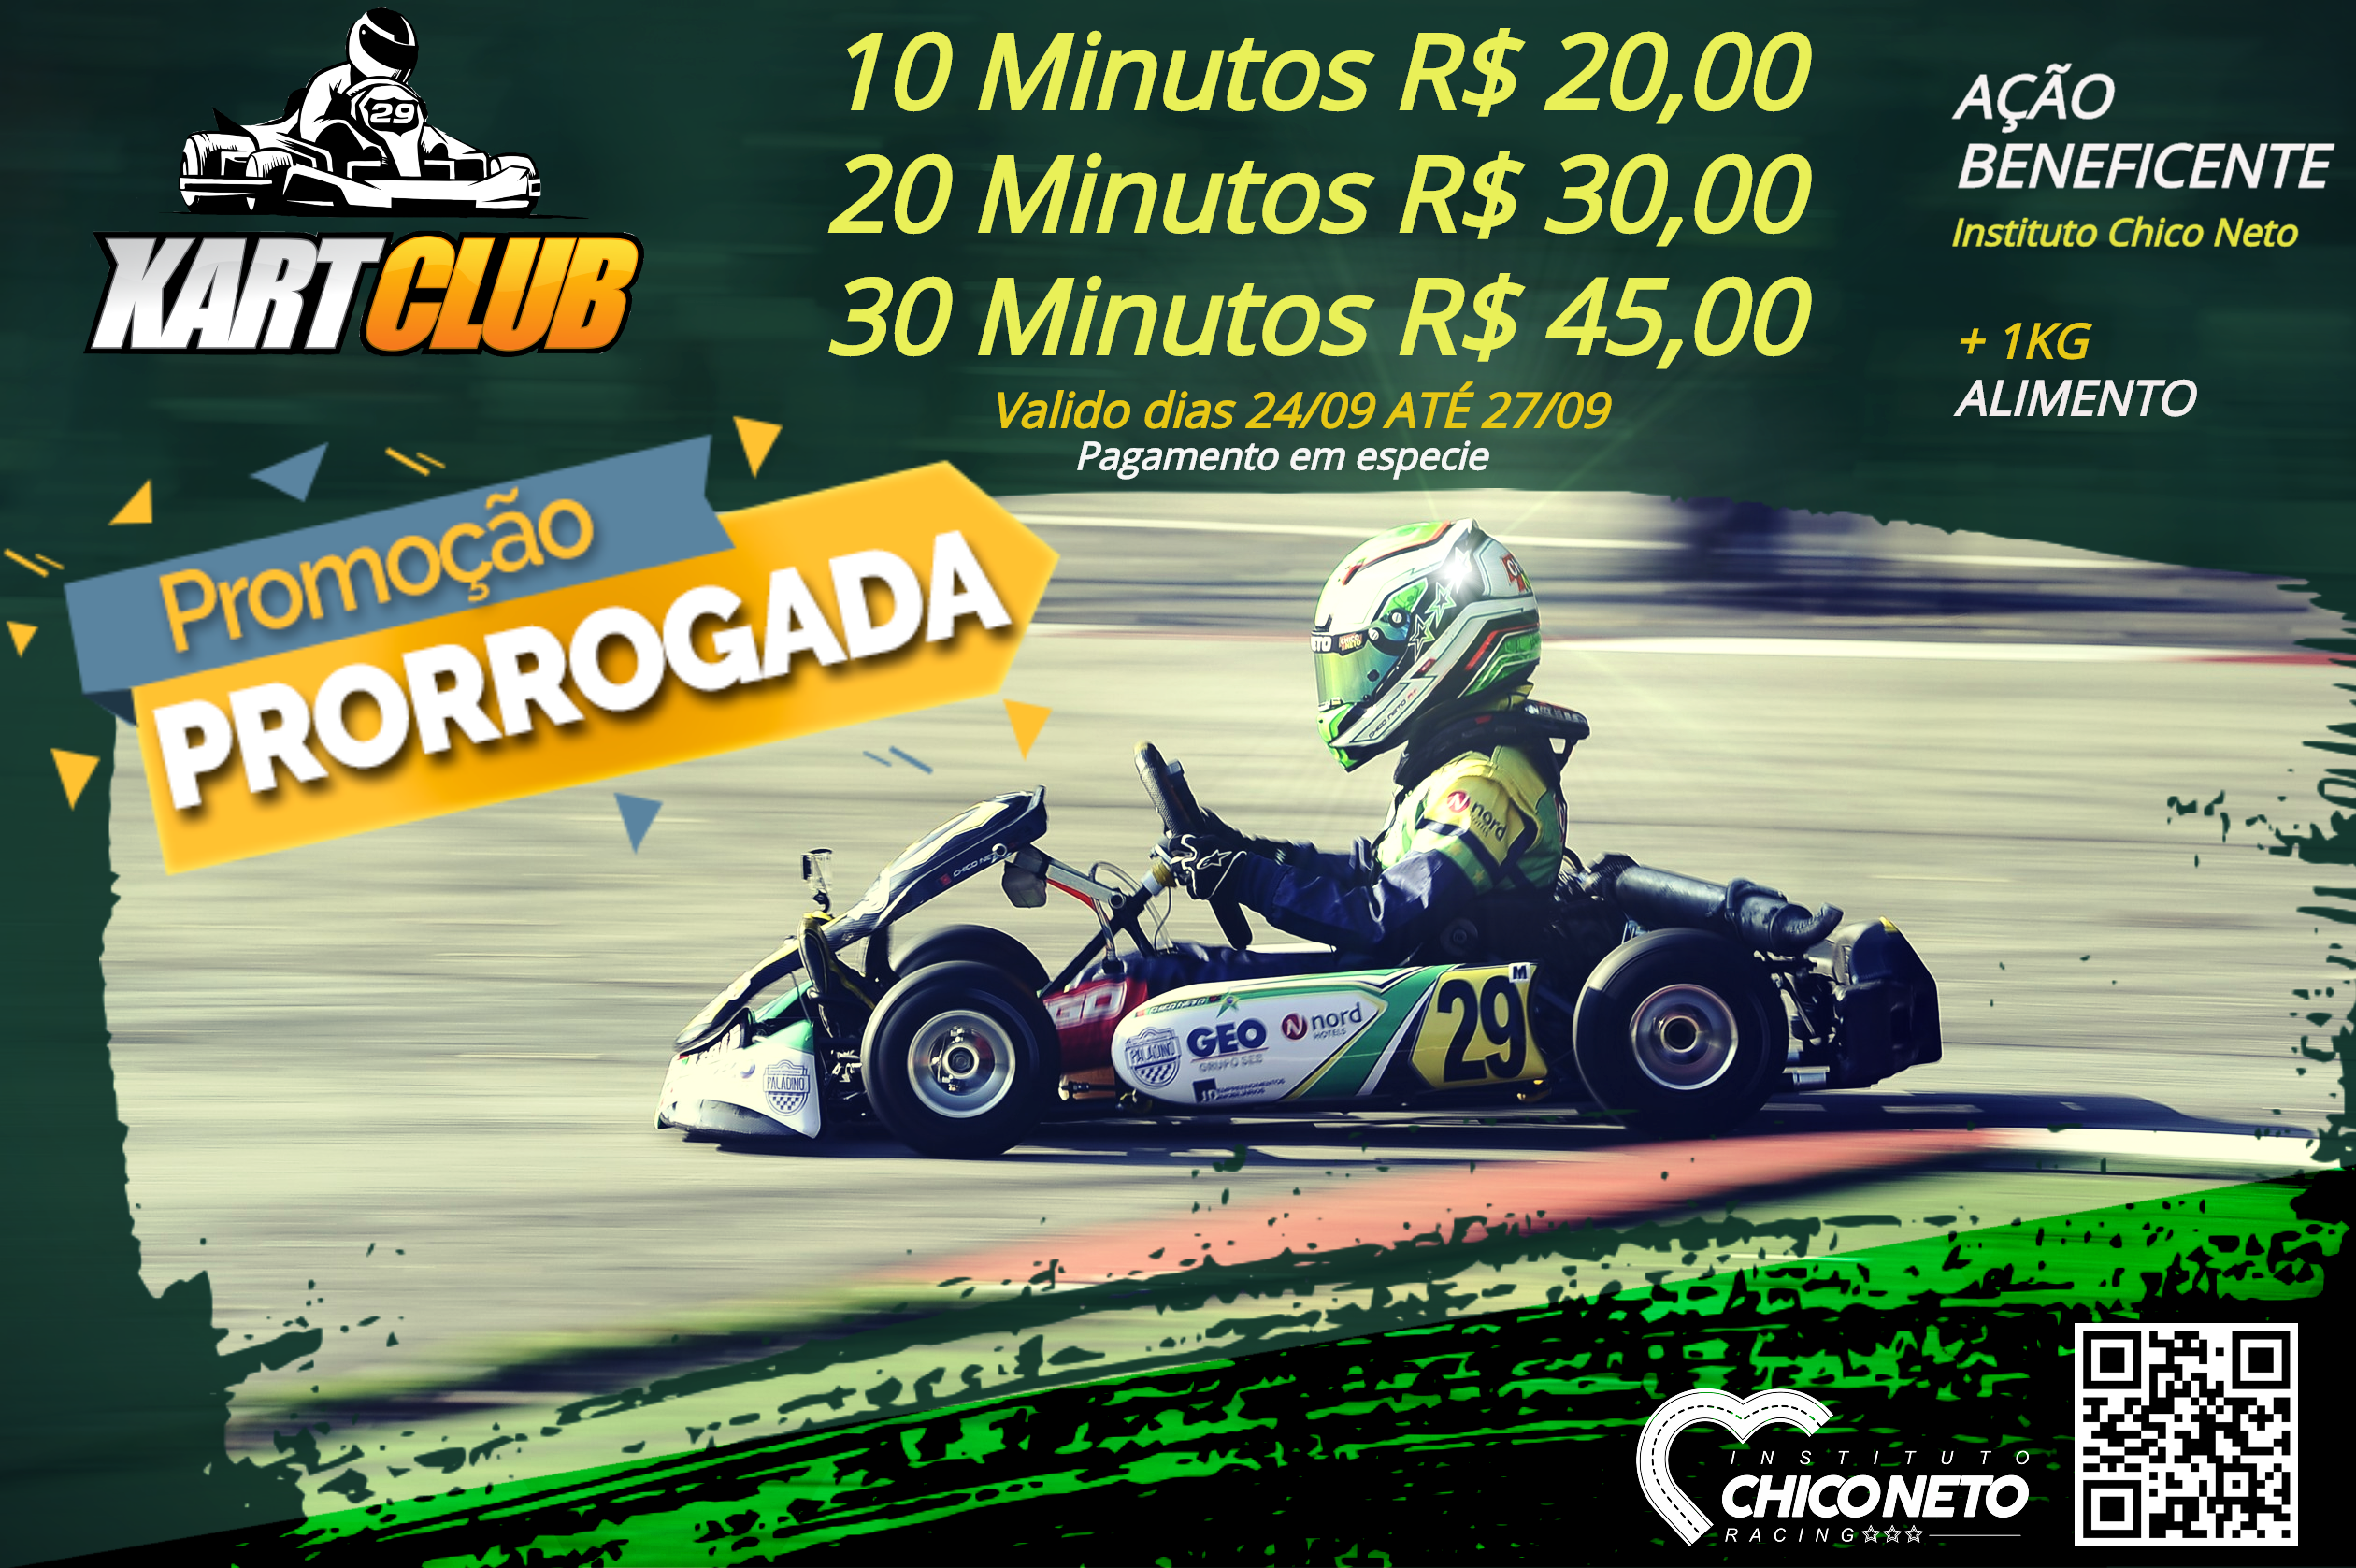 AÇÃO BENEFICENTE NO KART CLUB INDOOR